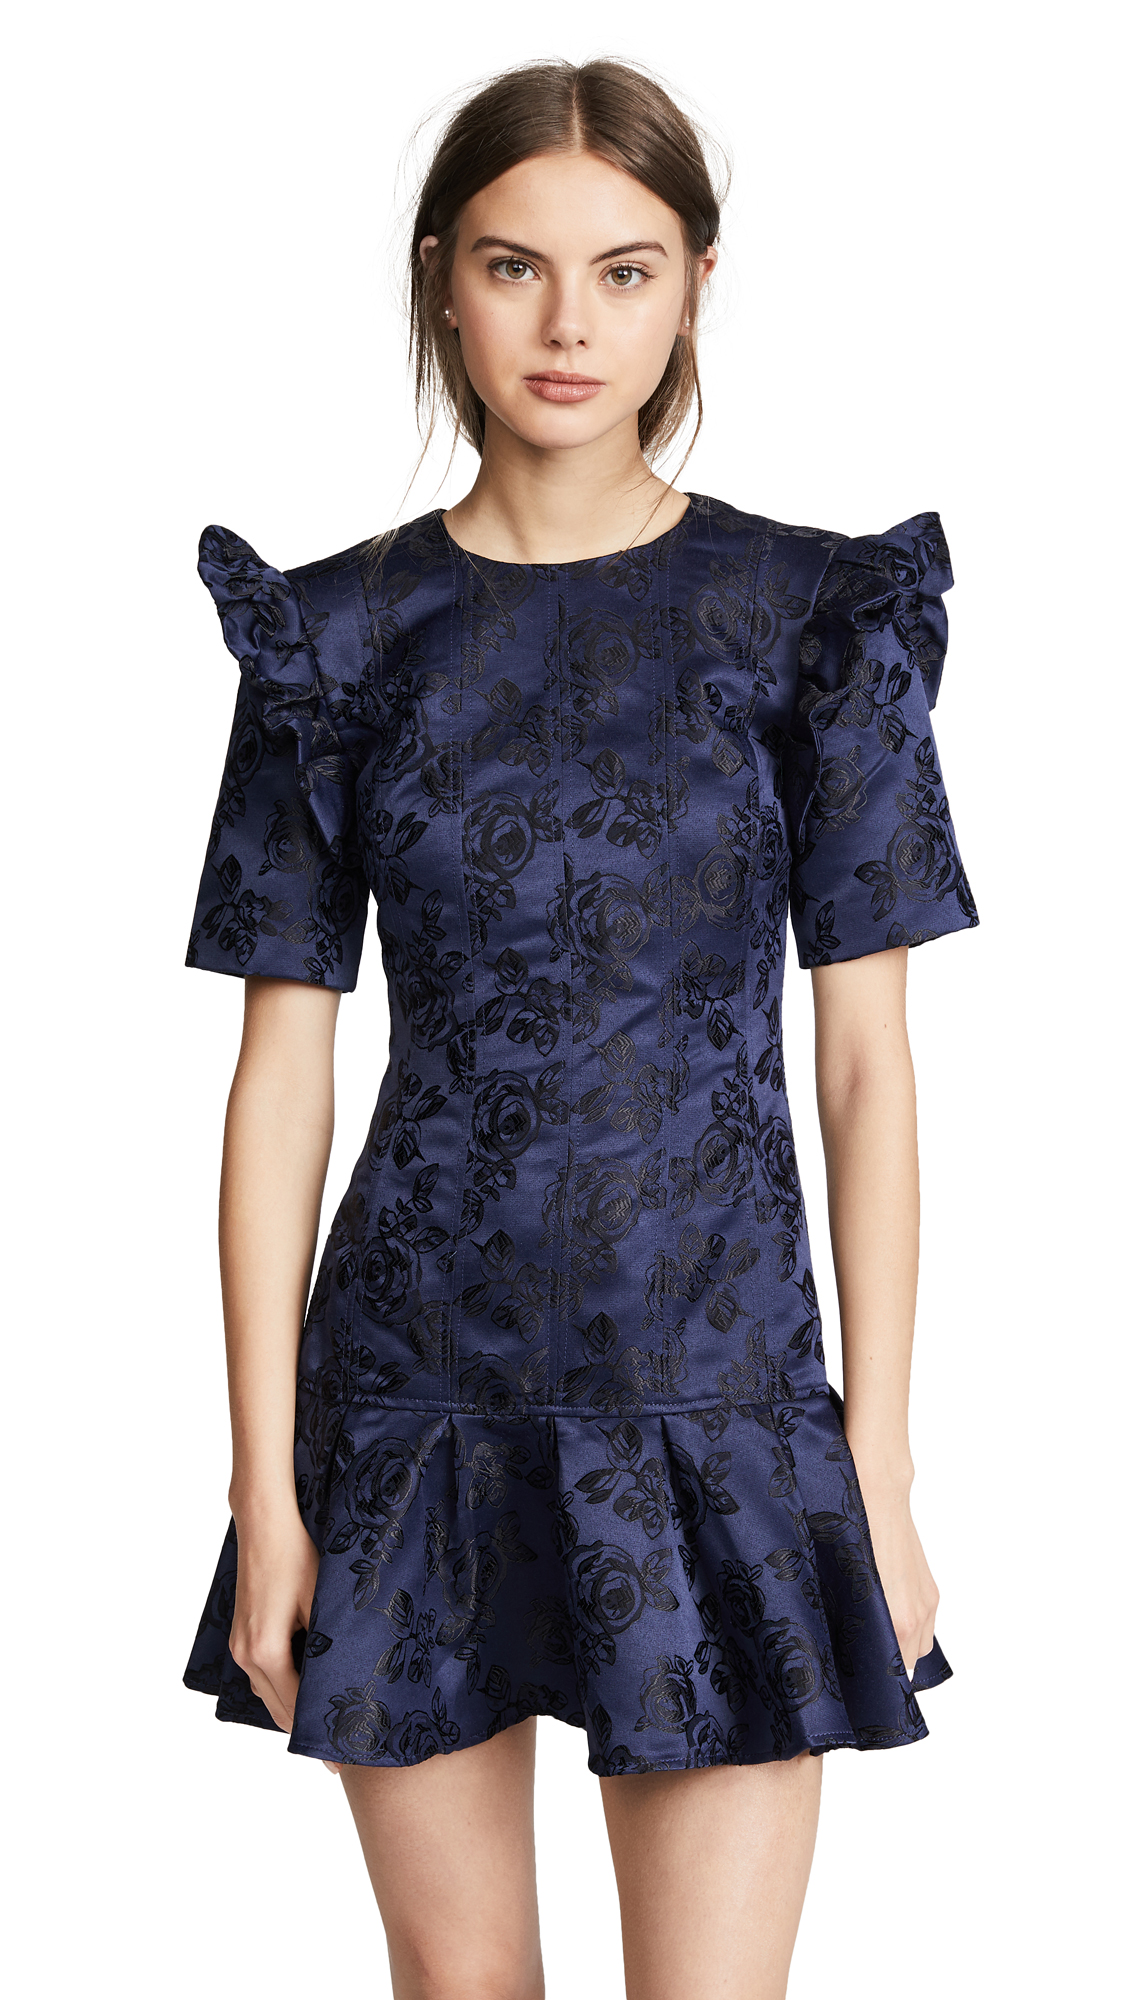 C/MEO COLLECTIVE C/Meo Felted Floral Puff Sleeve Dress - Blue